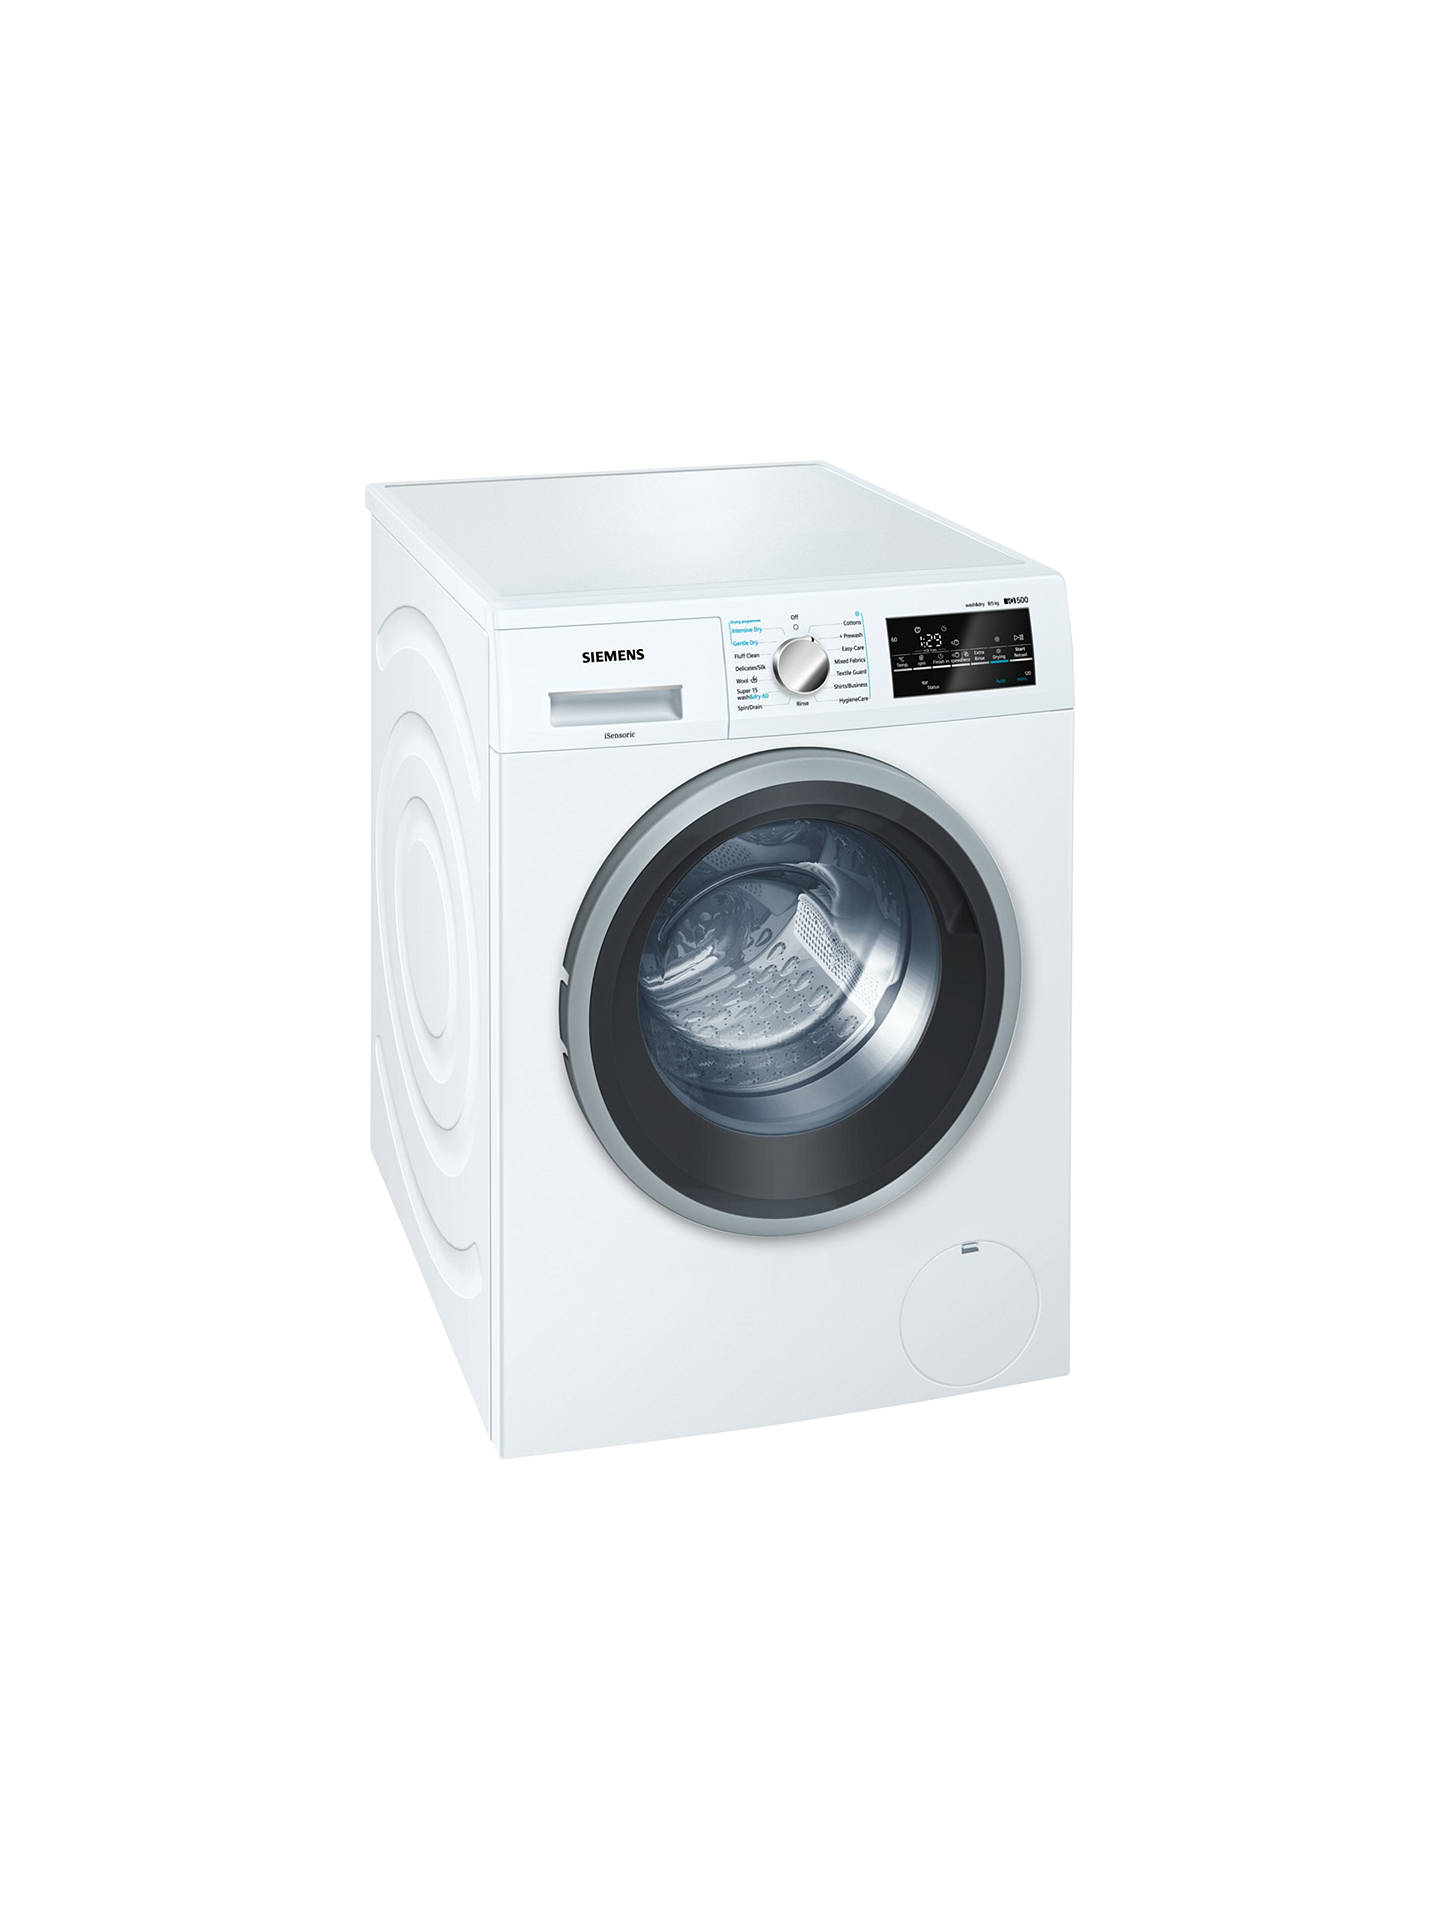 Siemens Wd15g421gb Washer Dryer 8kg Wash 5kg Dry Load A Energy